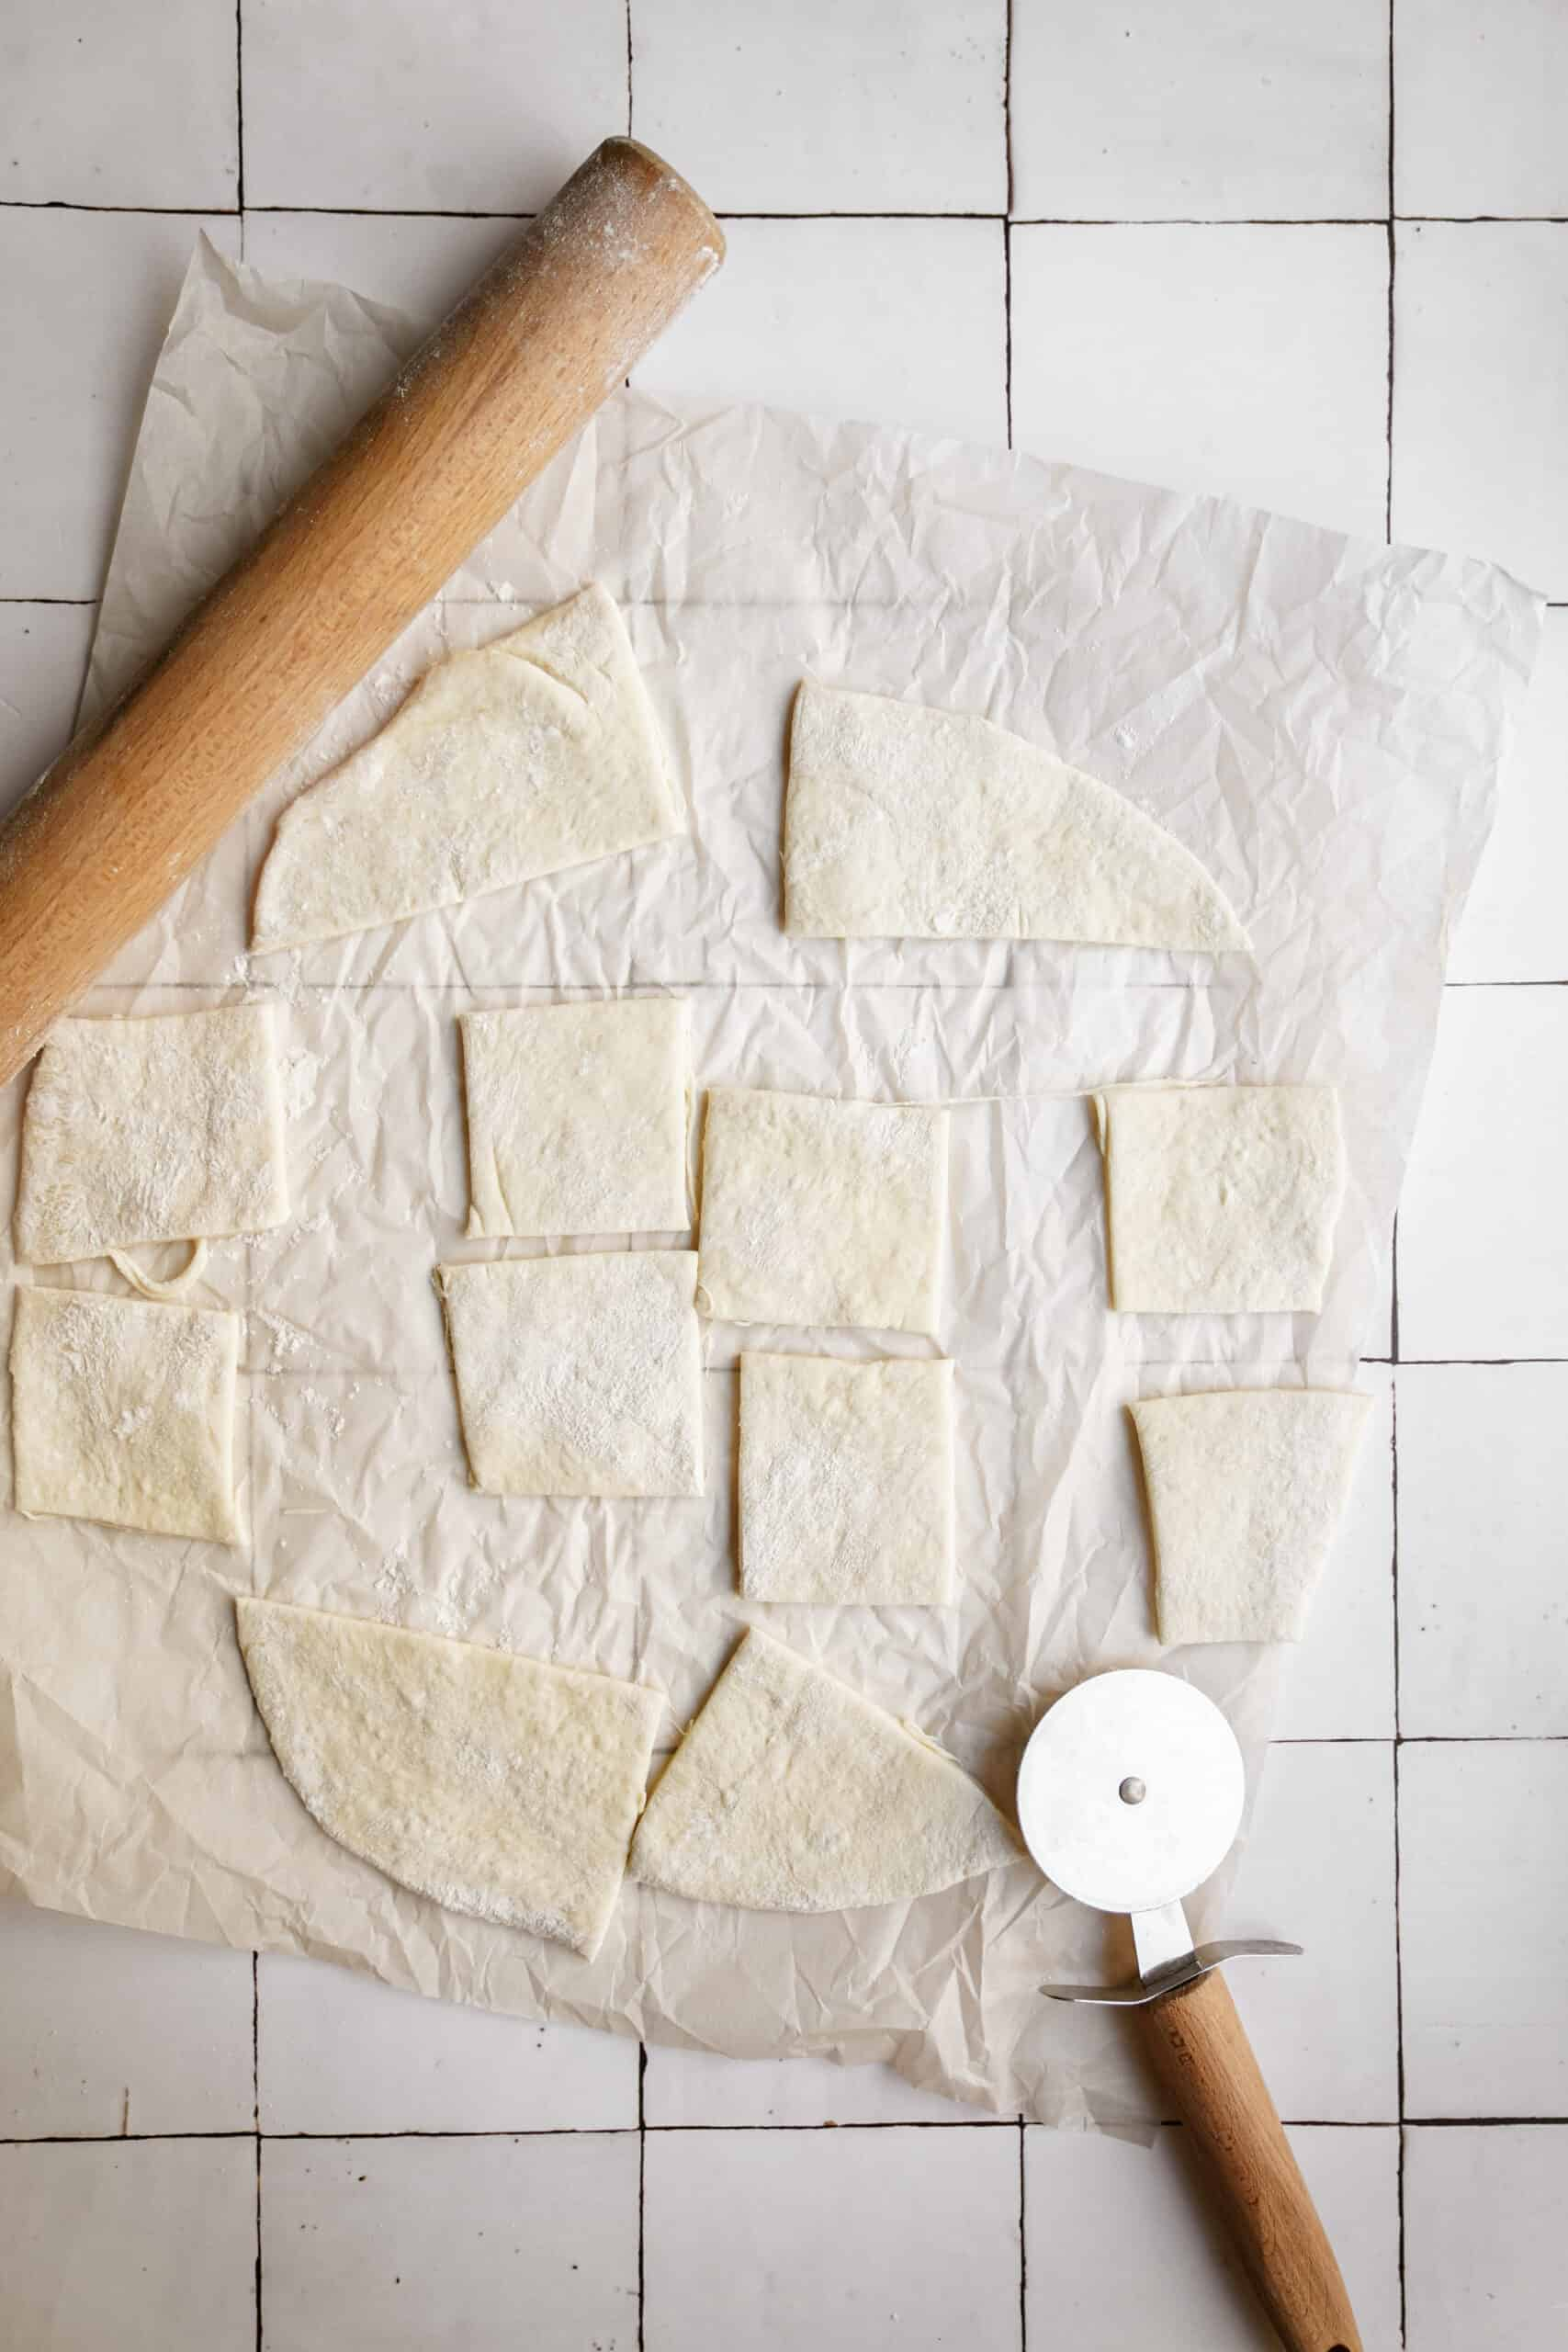 Pizza dough being rolled and cut on parchment